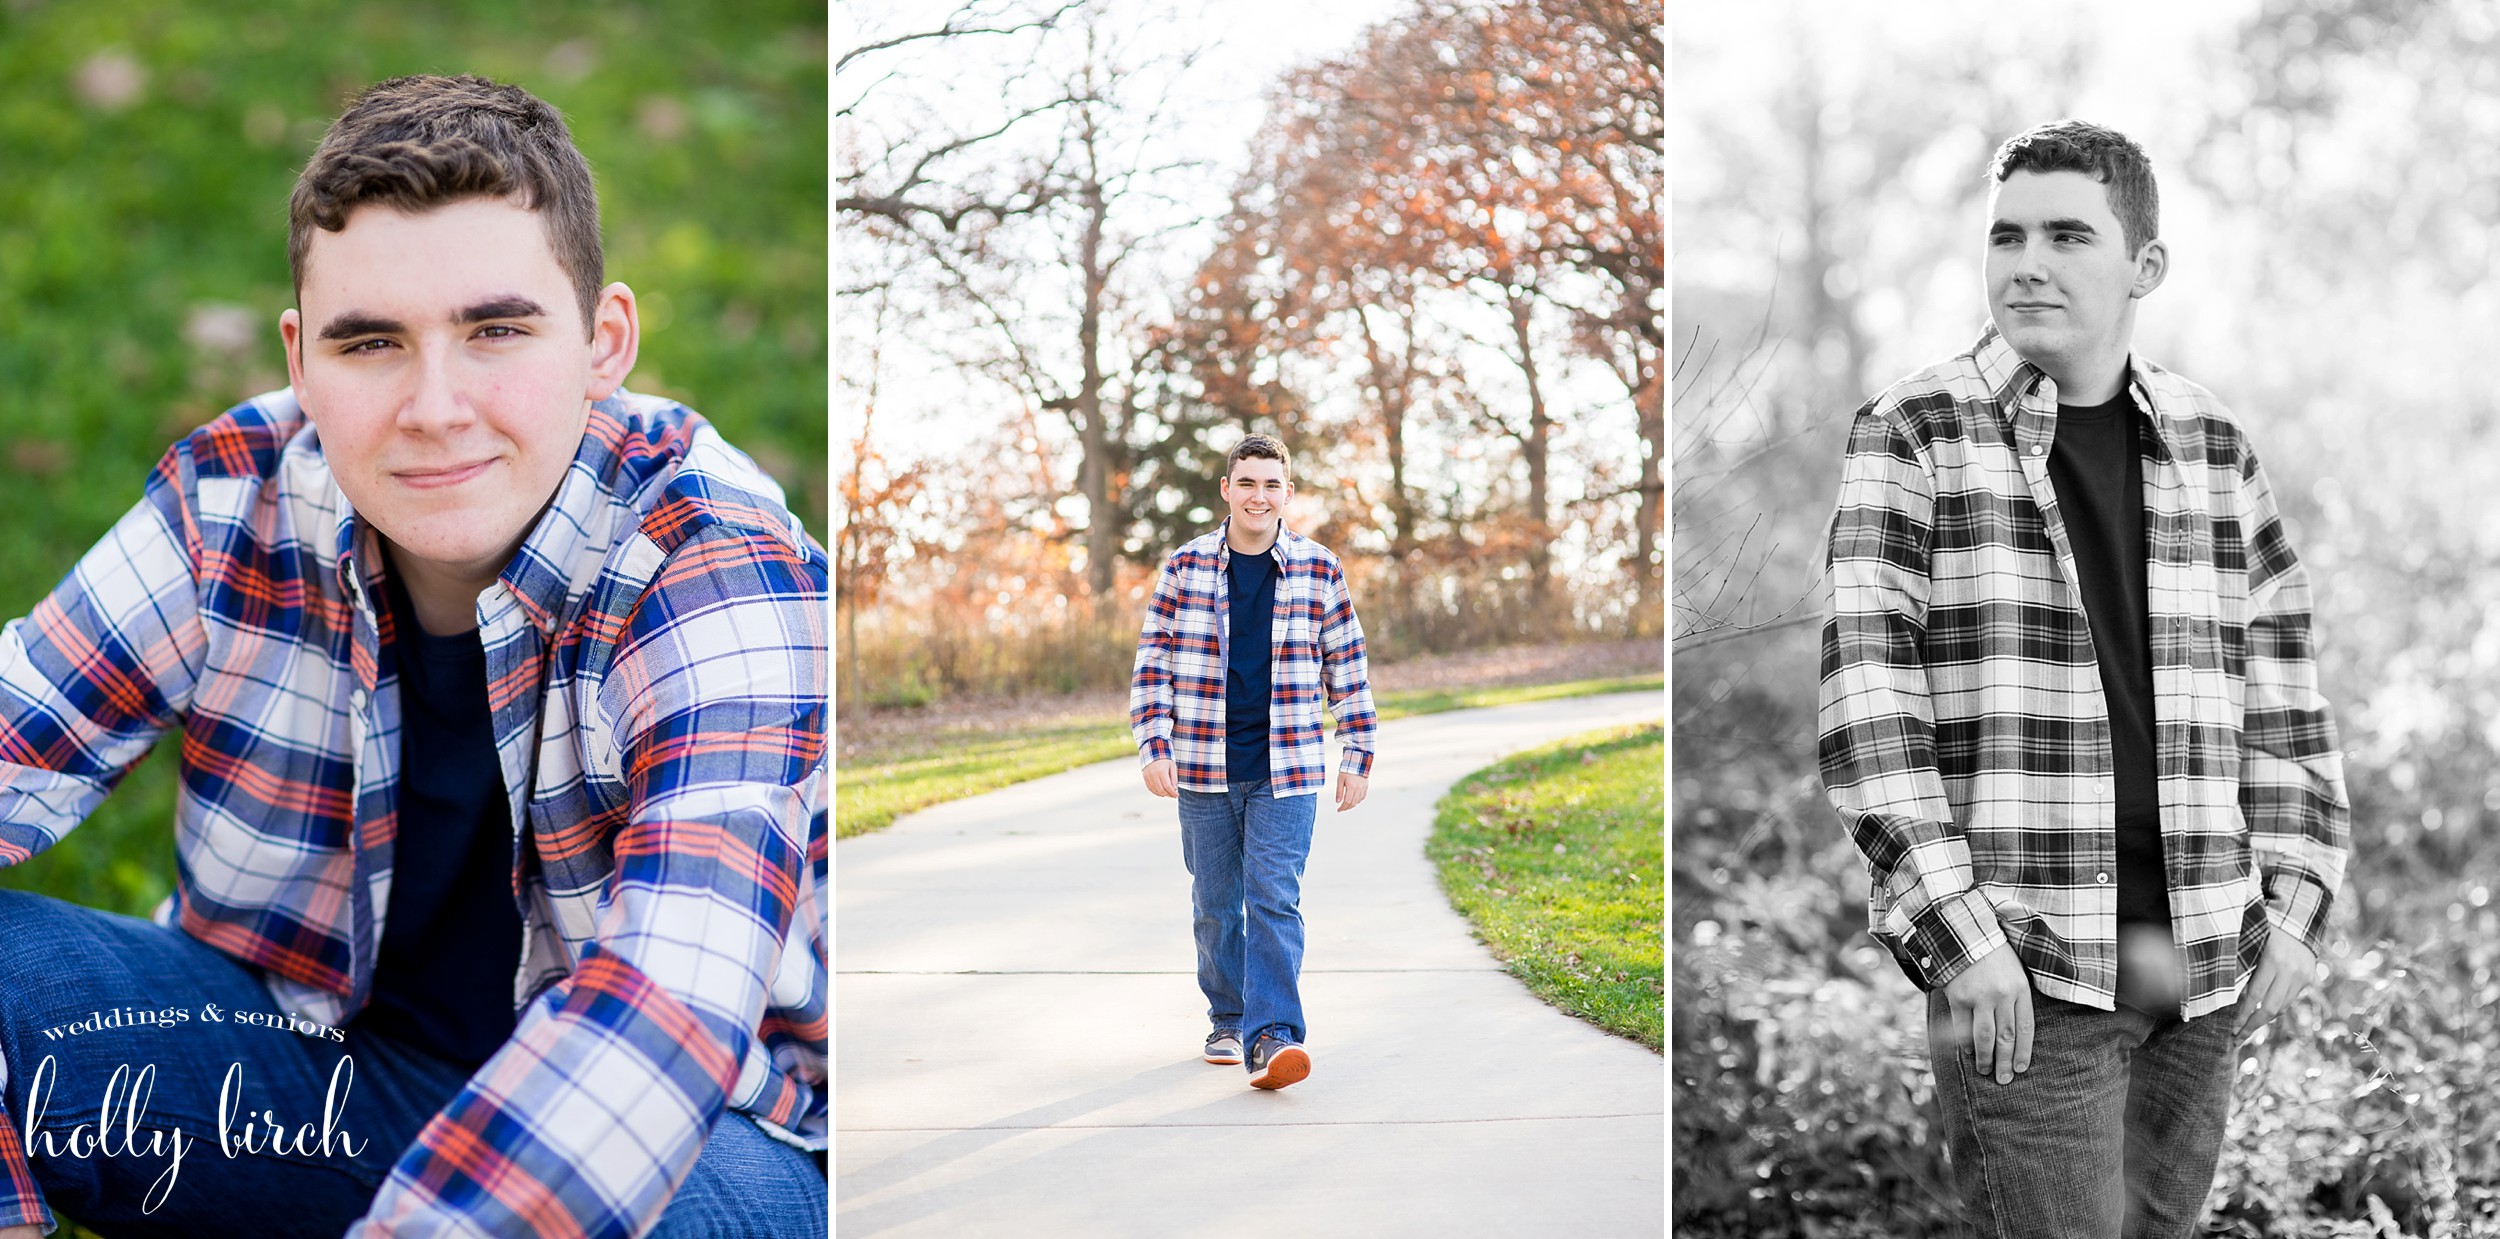 senior guy walking in fall with plaid shirt